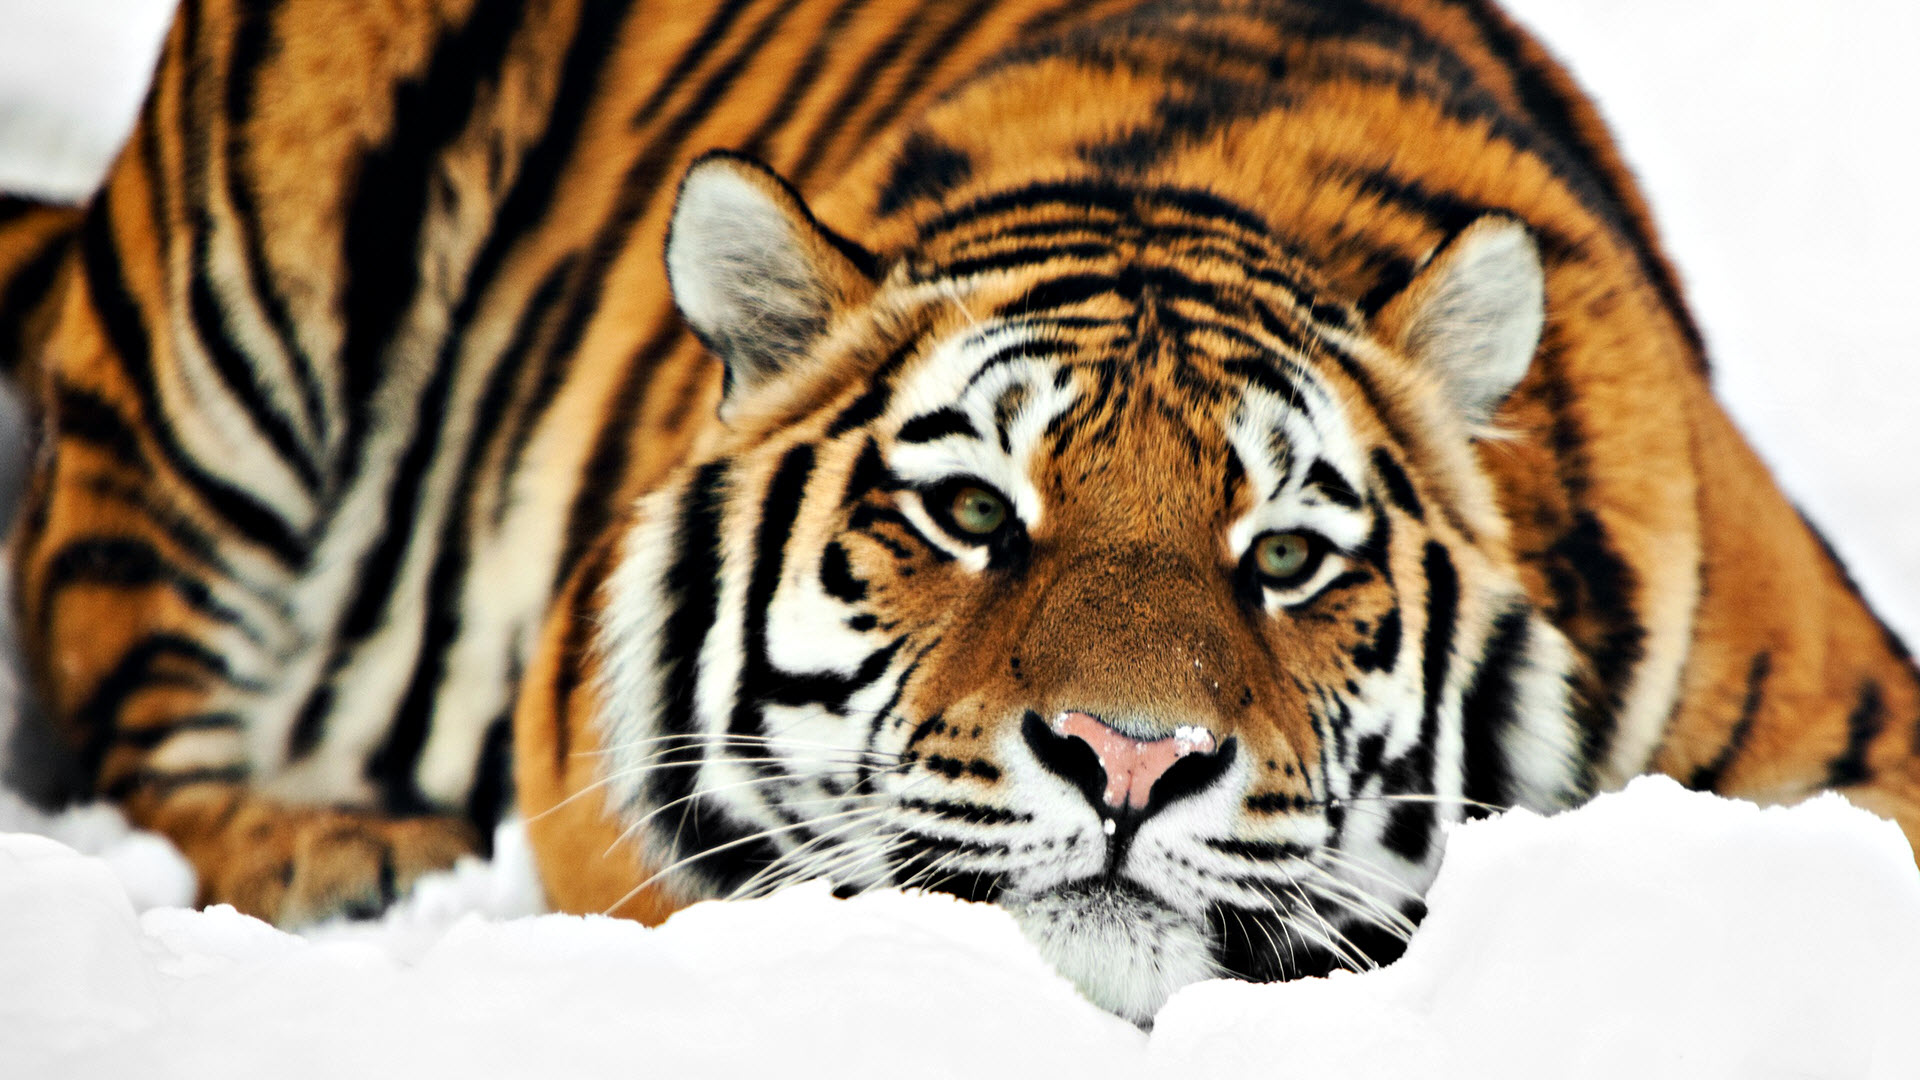 Cool Tiger Wallpapers Hd Desktop Wallpapers 4k Hd